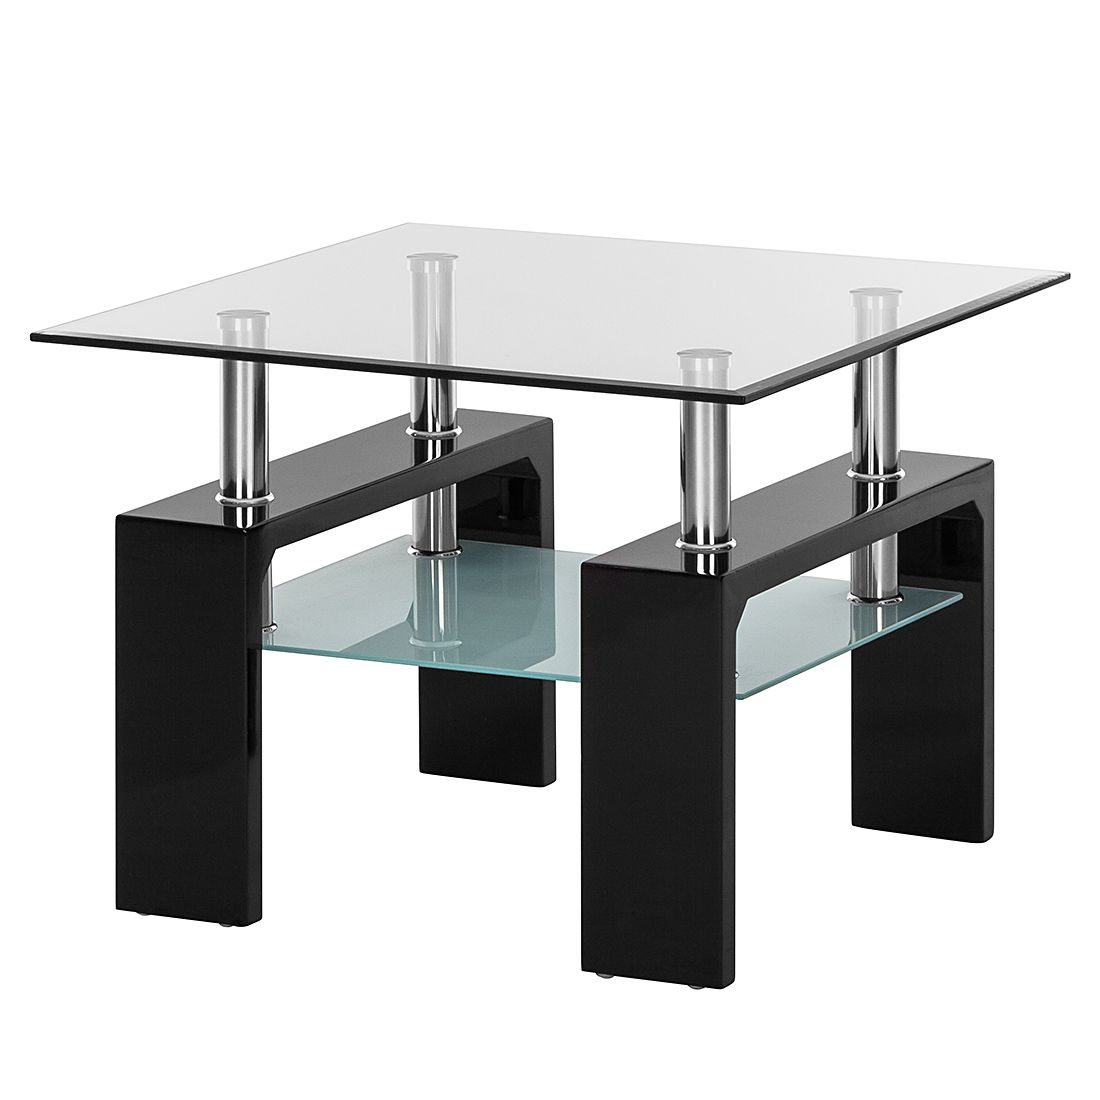 Table d'appoint Glassy I - Verre clair / Noir, roomscape